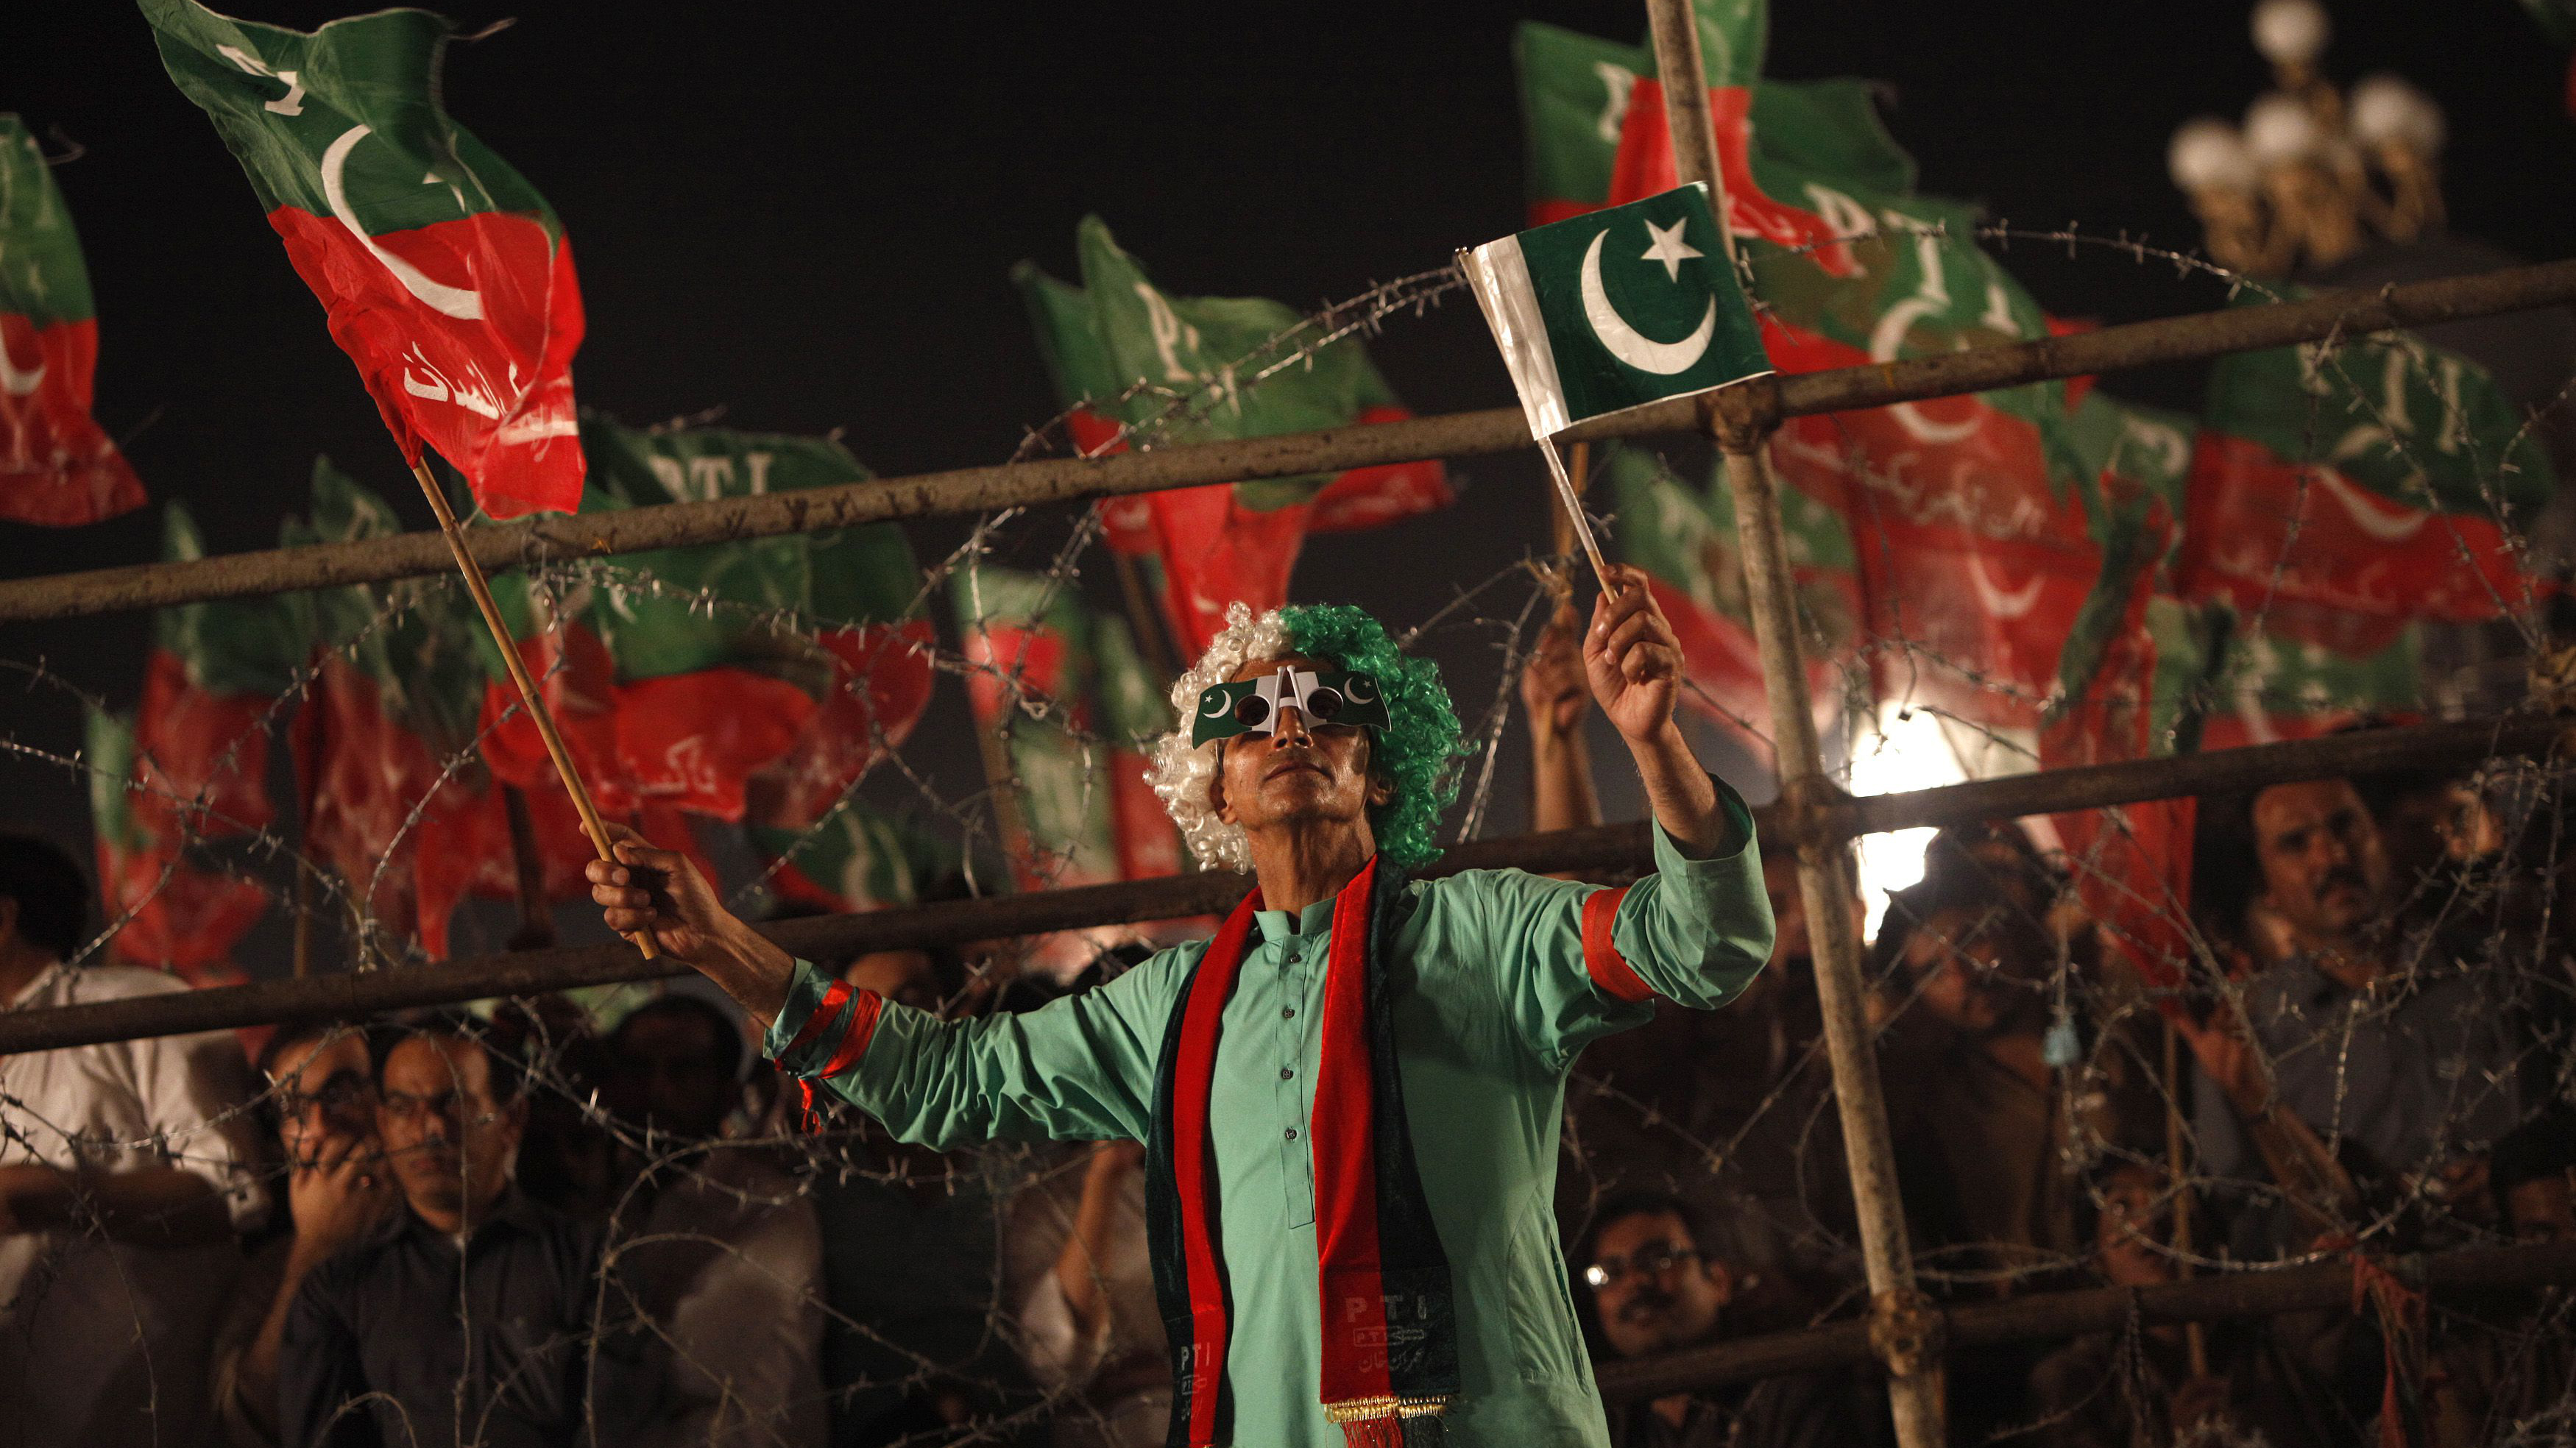 "A supporter of the chairman of the Pakistan Tehreek-e-Insaf (PTI) political party Imran Khan waves national and party flags while listening to him speak during what has been dubbed a ""freedom march"" in Islamabad August 26, 2014. Protesters led by cricketer-turned-politician Imran Khan and firebrand cleric Tahir ul-Qadri have vowed to occupy the capital, Islamabad, until Sharif resigns - a demand the premier has firmly rejected. REUTERS/Akhtar Soomro (PAKISTAN - Tags: POLITICS CIVIL UNREST TPX IMAGES OF THE DAY)"